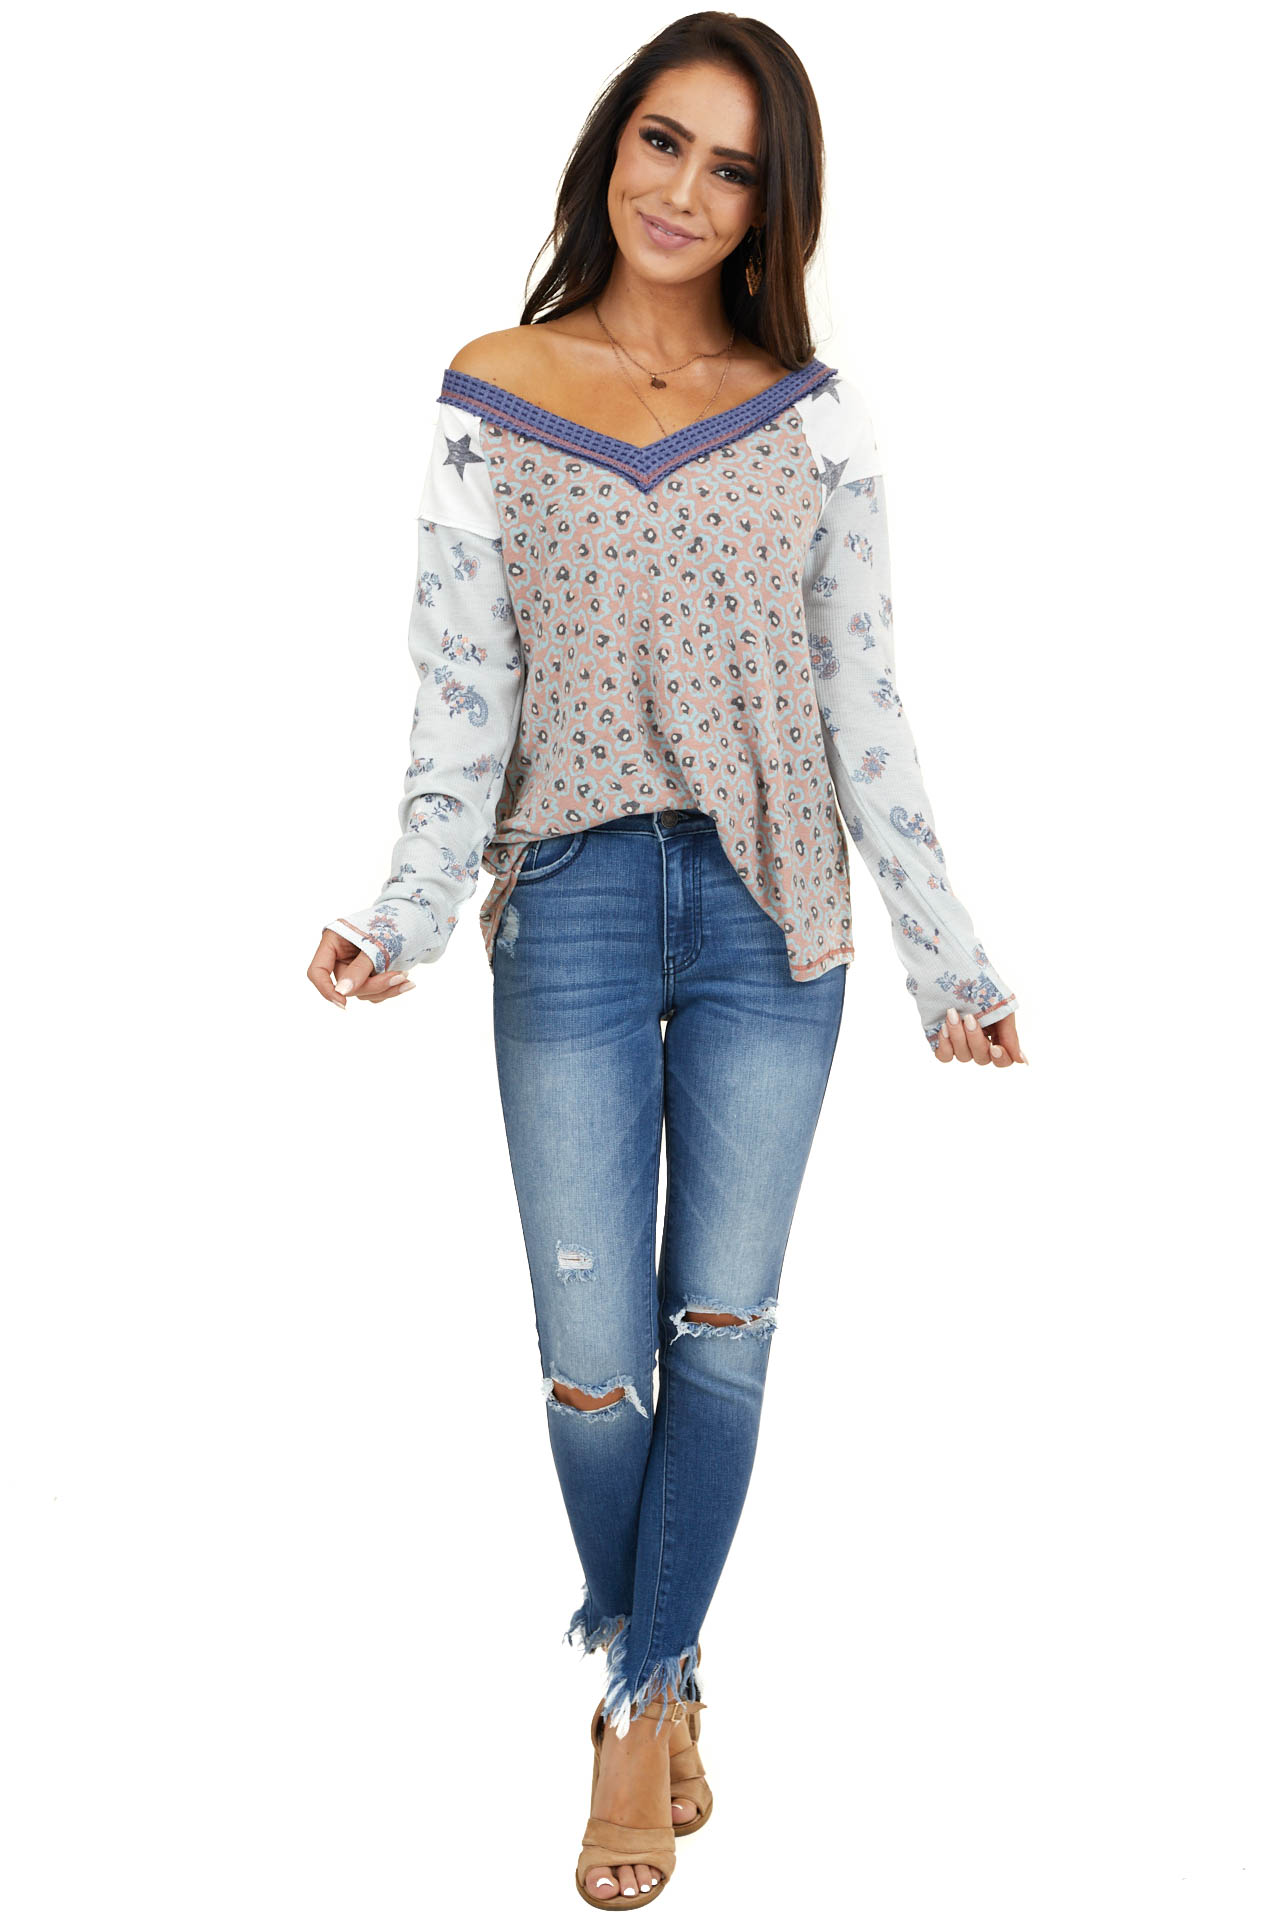 Mauve Multiprint V Neck Knit Top with Long Contrast Sleeves